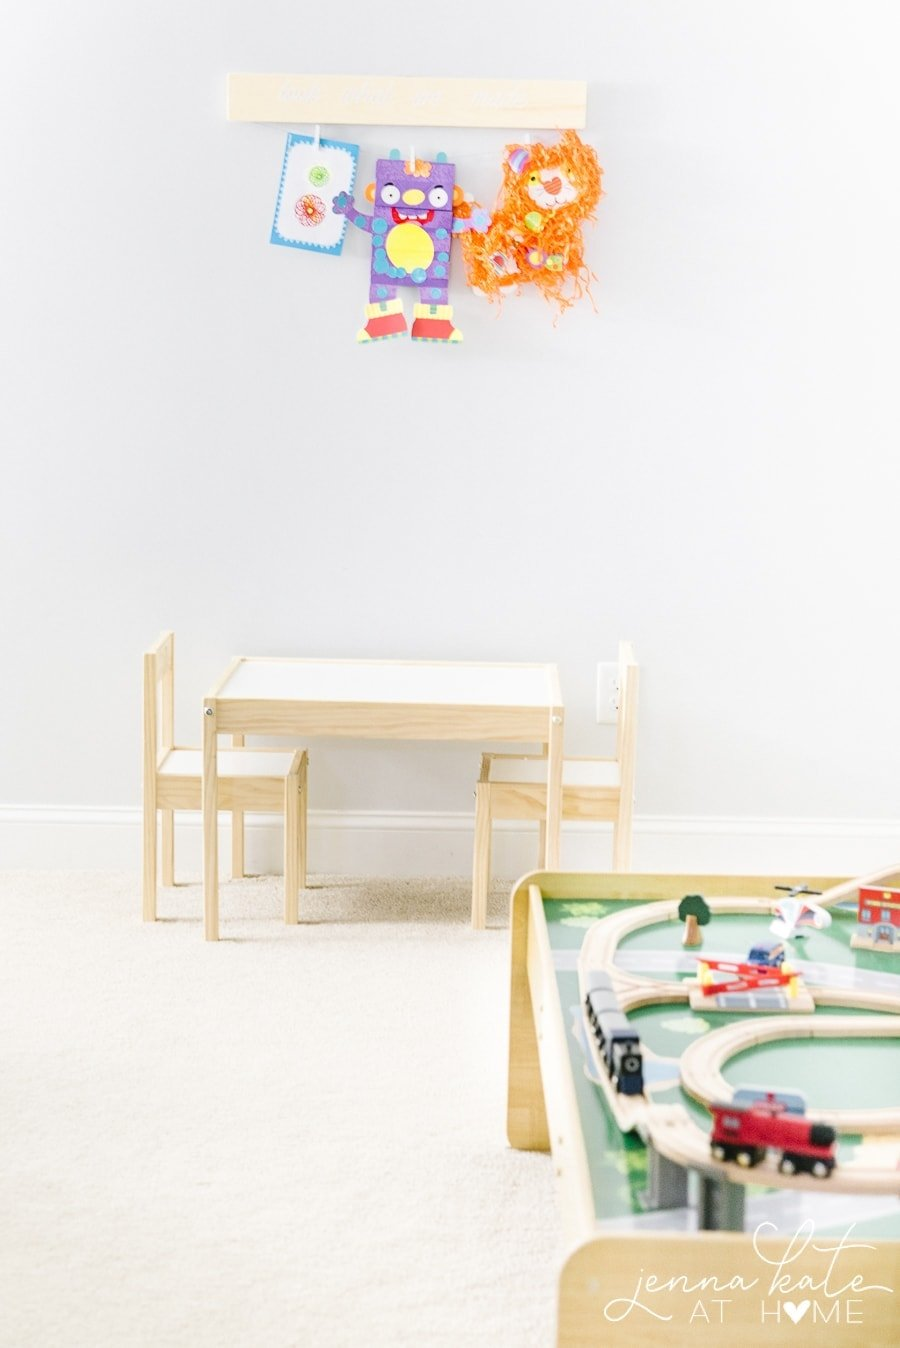 A child\'s playroom with a small table and two chairs, a wooden train table and various artwork hanging on a wooden display